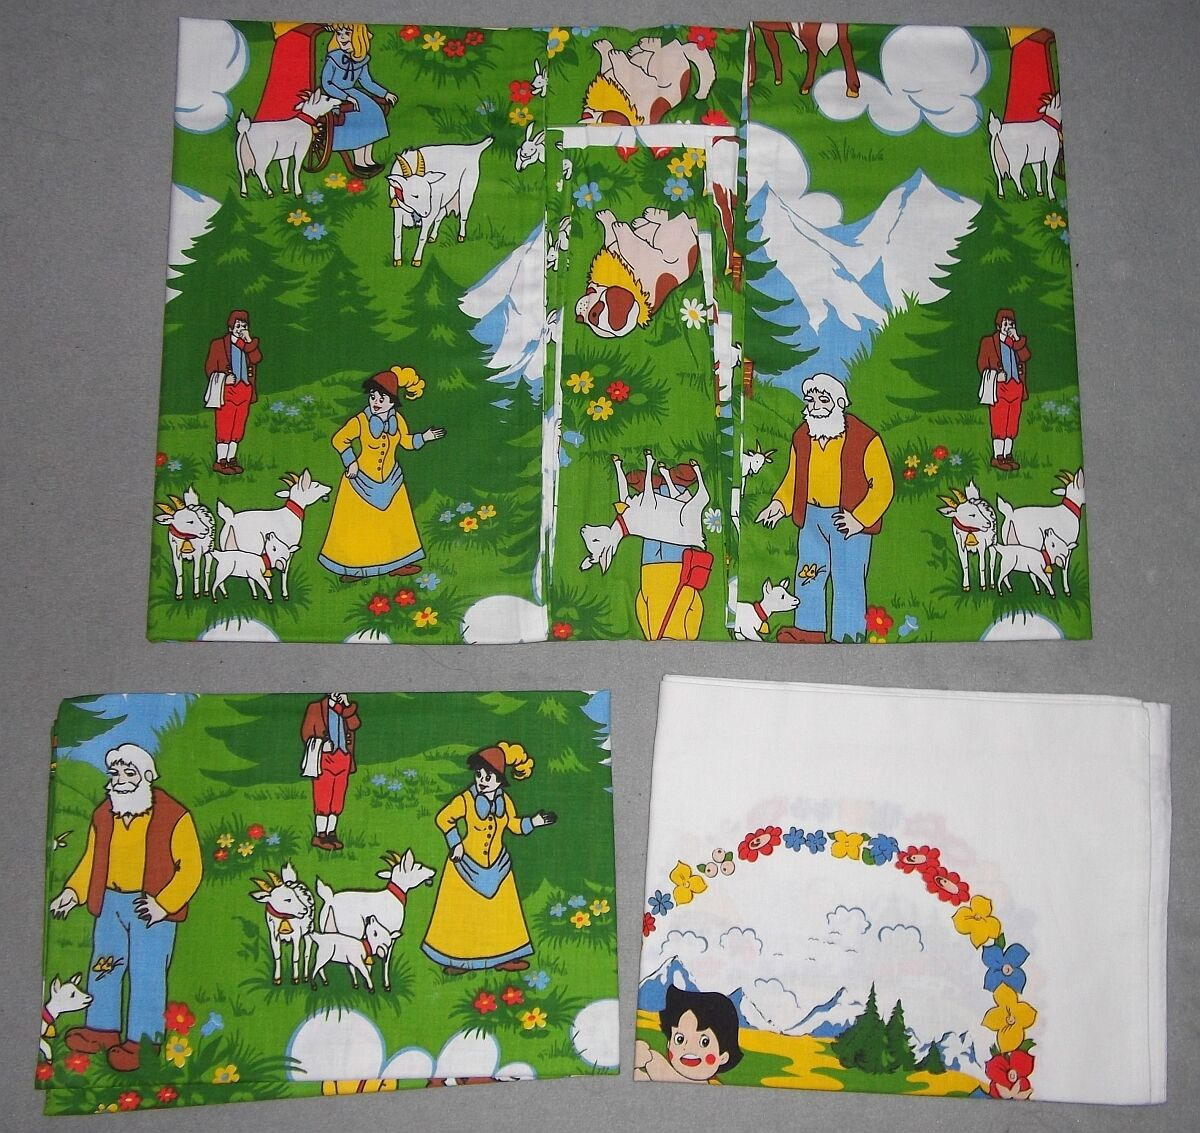 Heidi Baby-Linge de lit NEUF 70er Vintage New Fabric Bedding Girl of Alps 70 S personnage